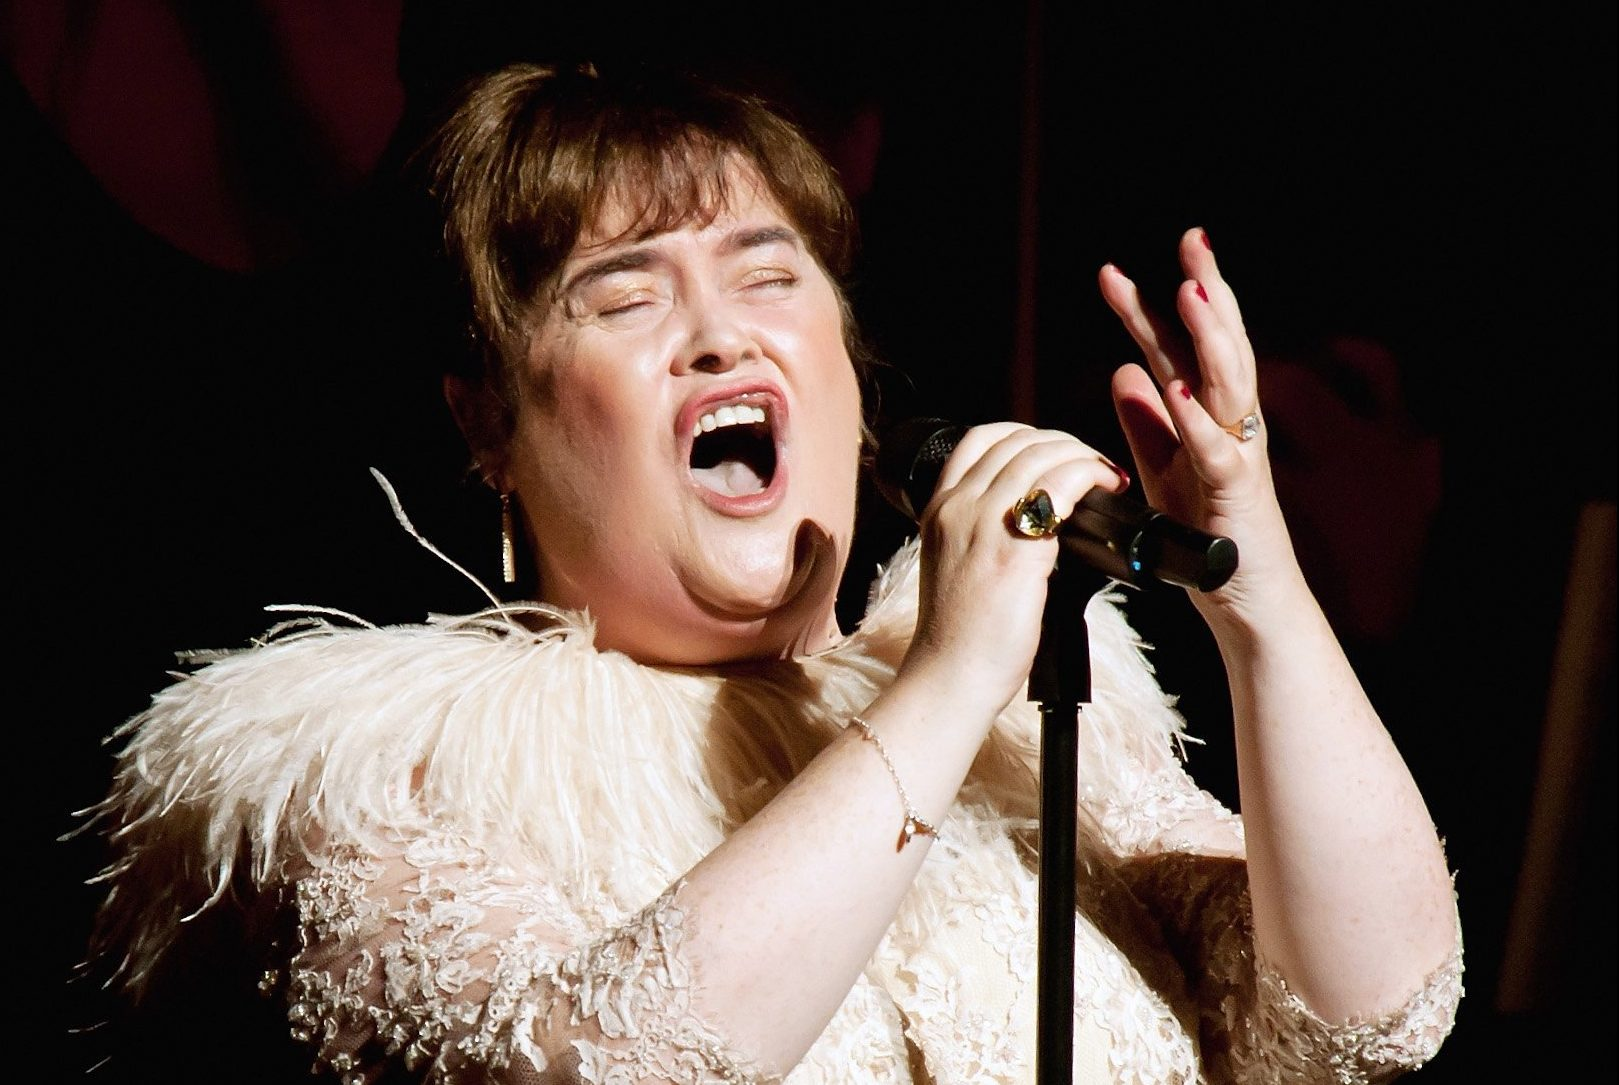 COSTA MESA, CA - OCTOBER 16: Susan Boyle performs at Segerstrom Center For The Arts on October 16, 2014 in Costa Mesa, California. (Photo by Doug Gifford/Getty Images)